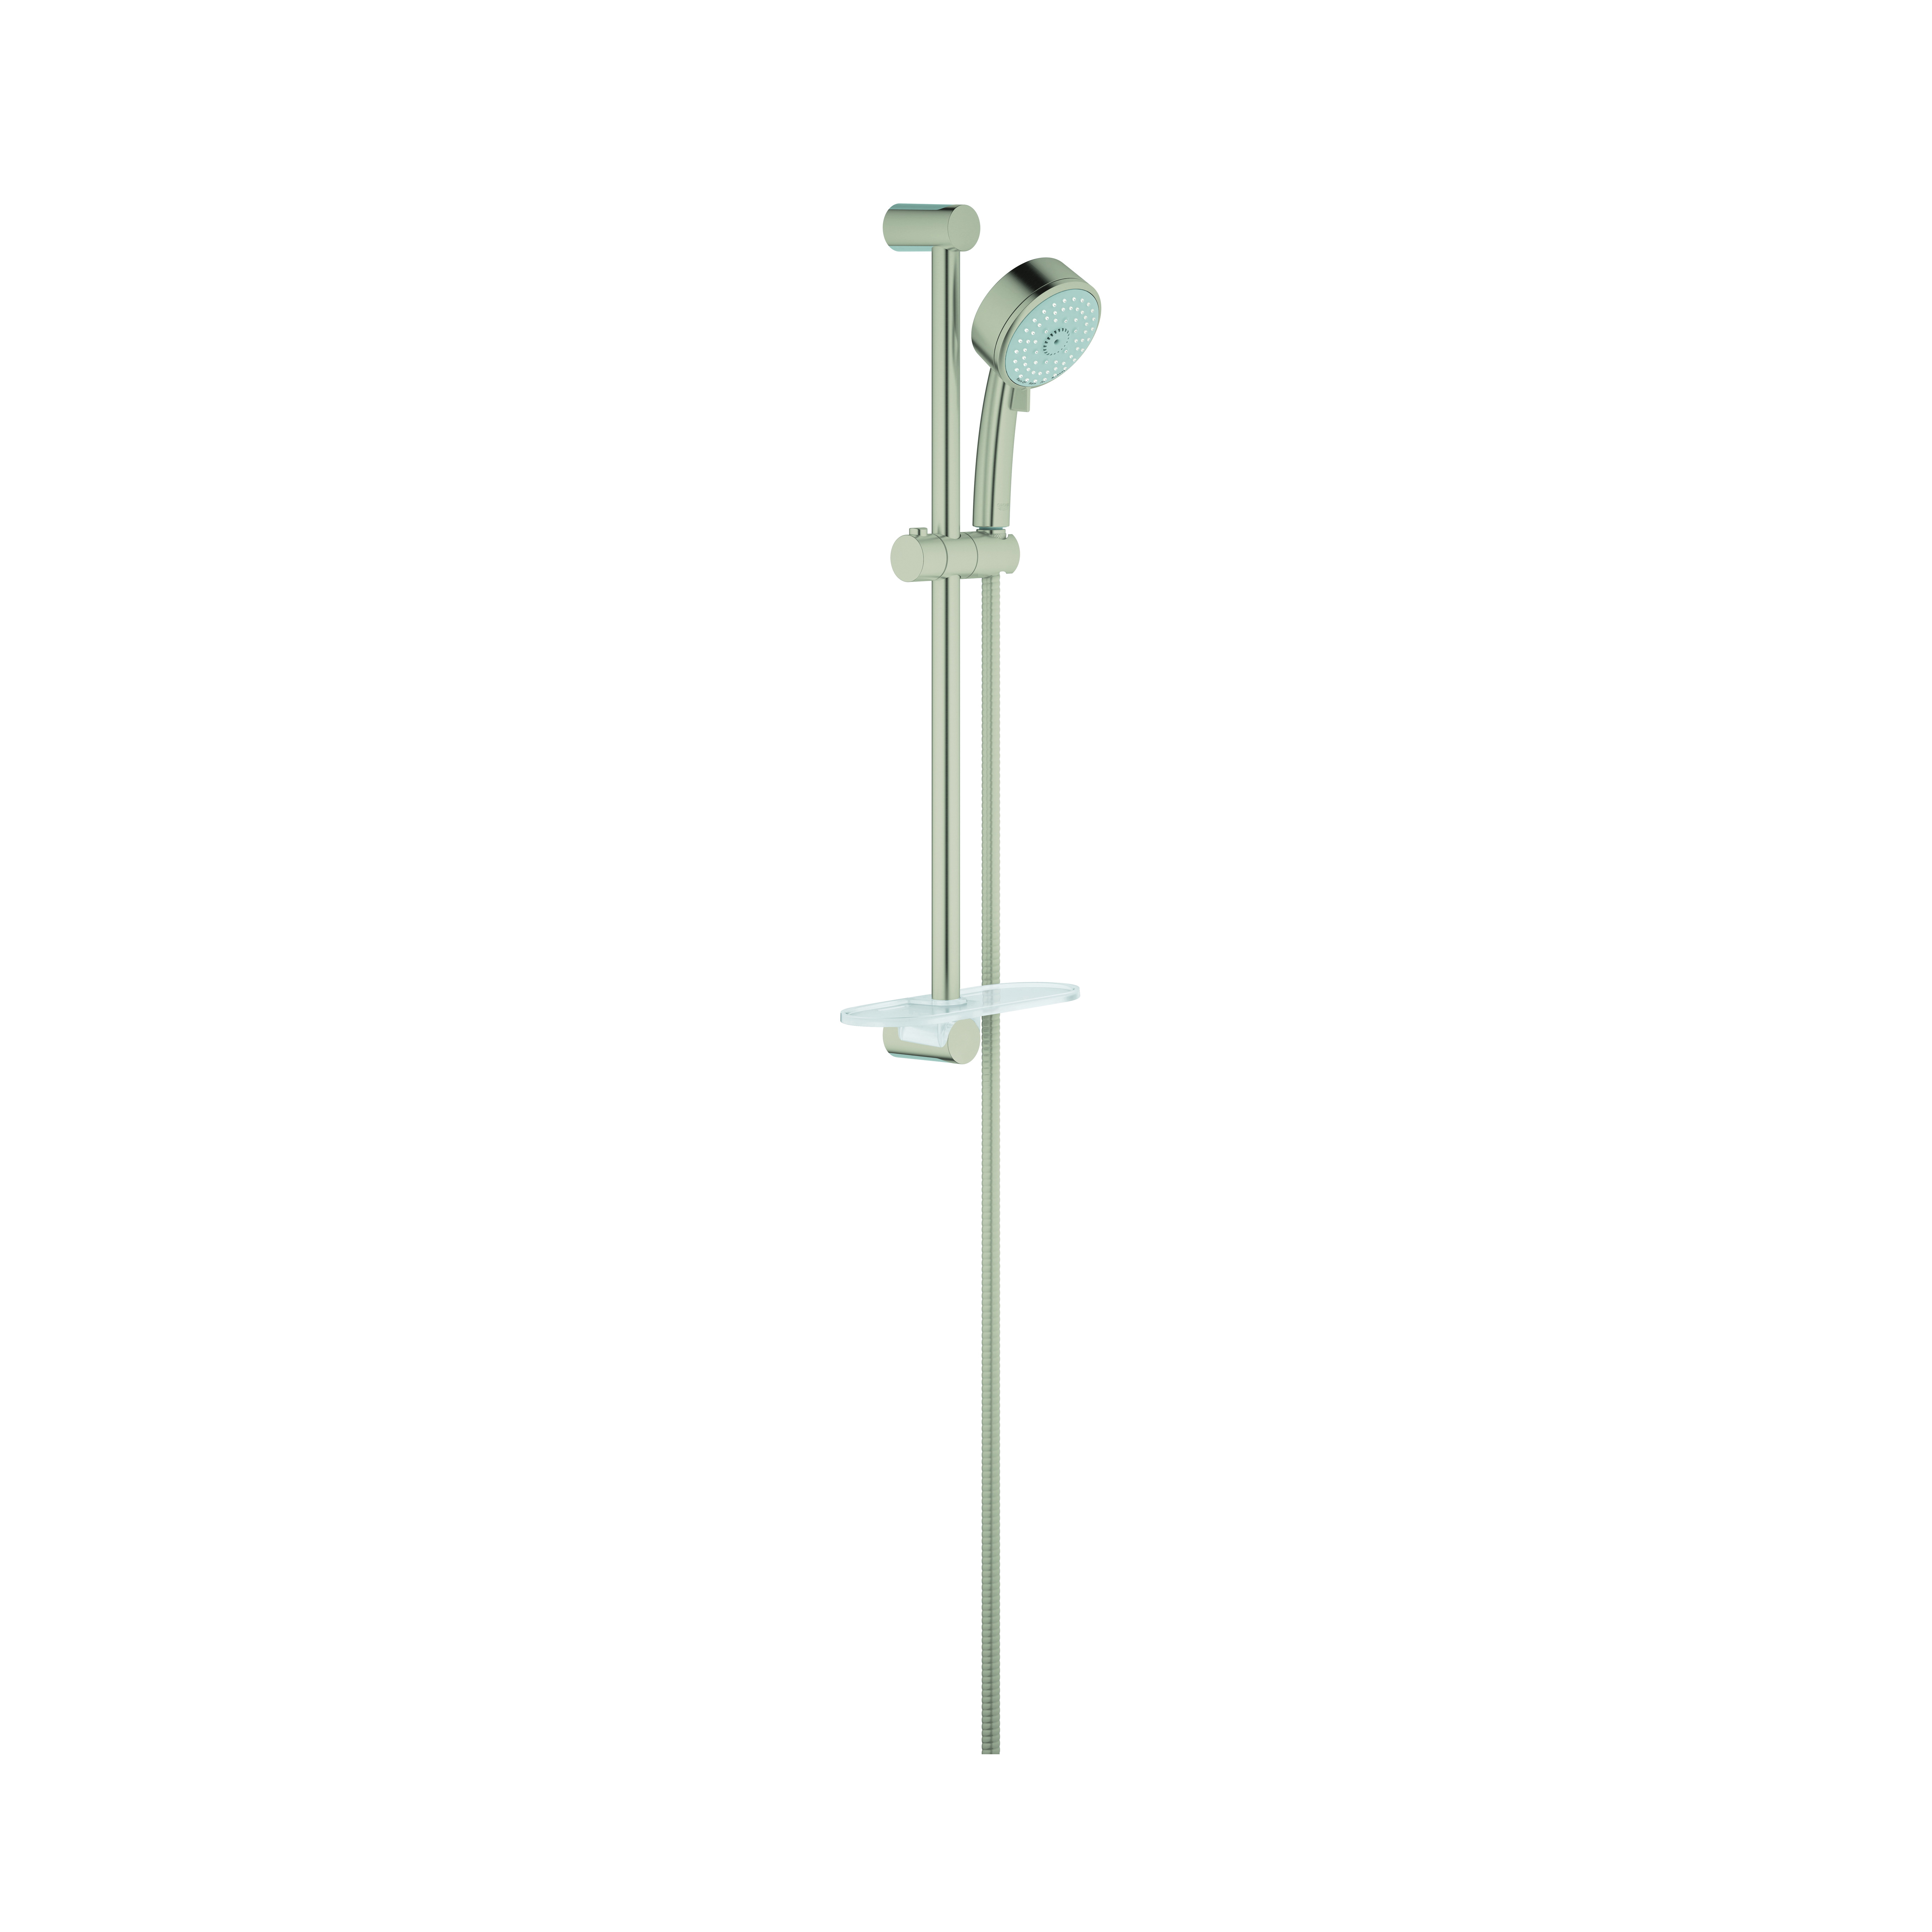 GROHE 27577EN1 New Tempesta® Cosmopolitan 100 Shower Rail Set, 3-15/16 in Dia Head, 2.5 gpm, 69 in L Hose, G-1/2, Brushed Nickel, Import